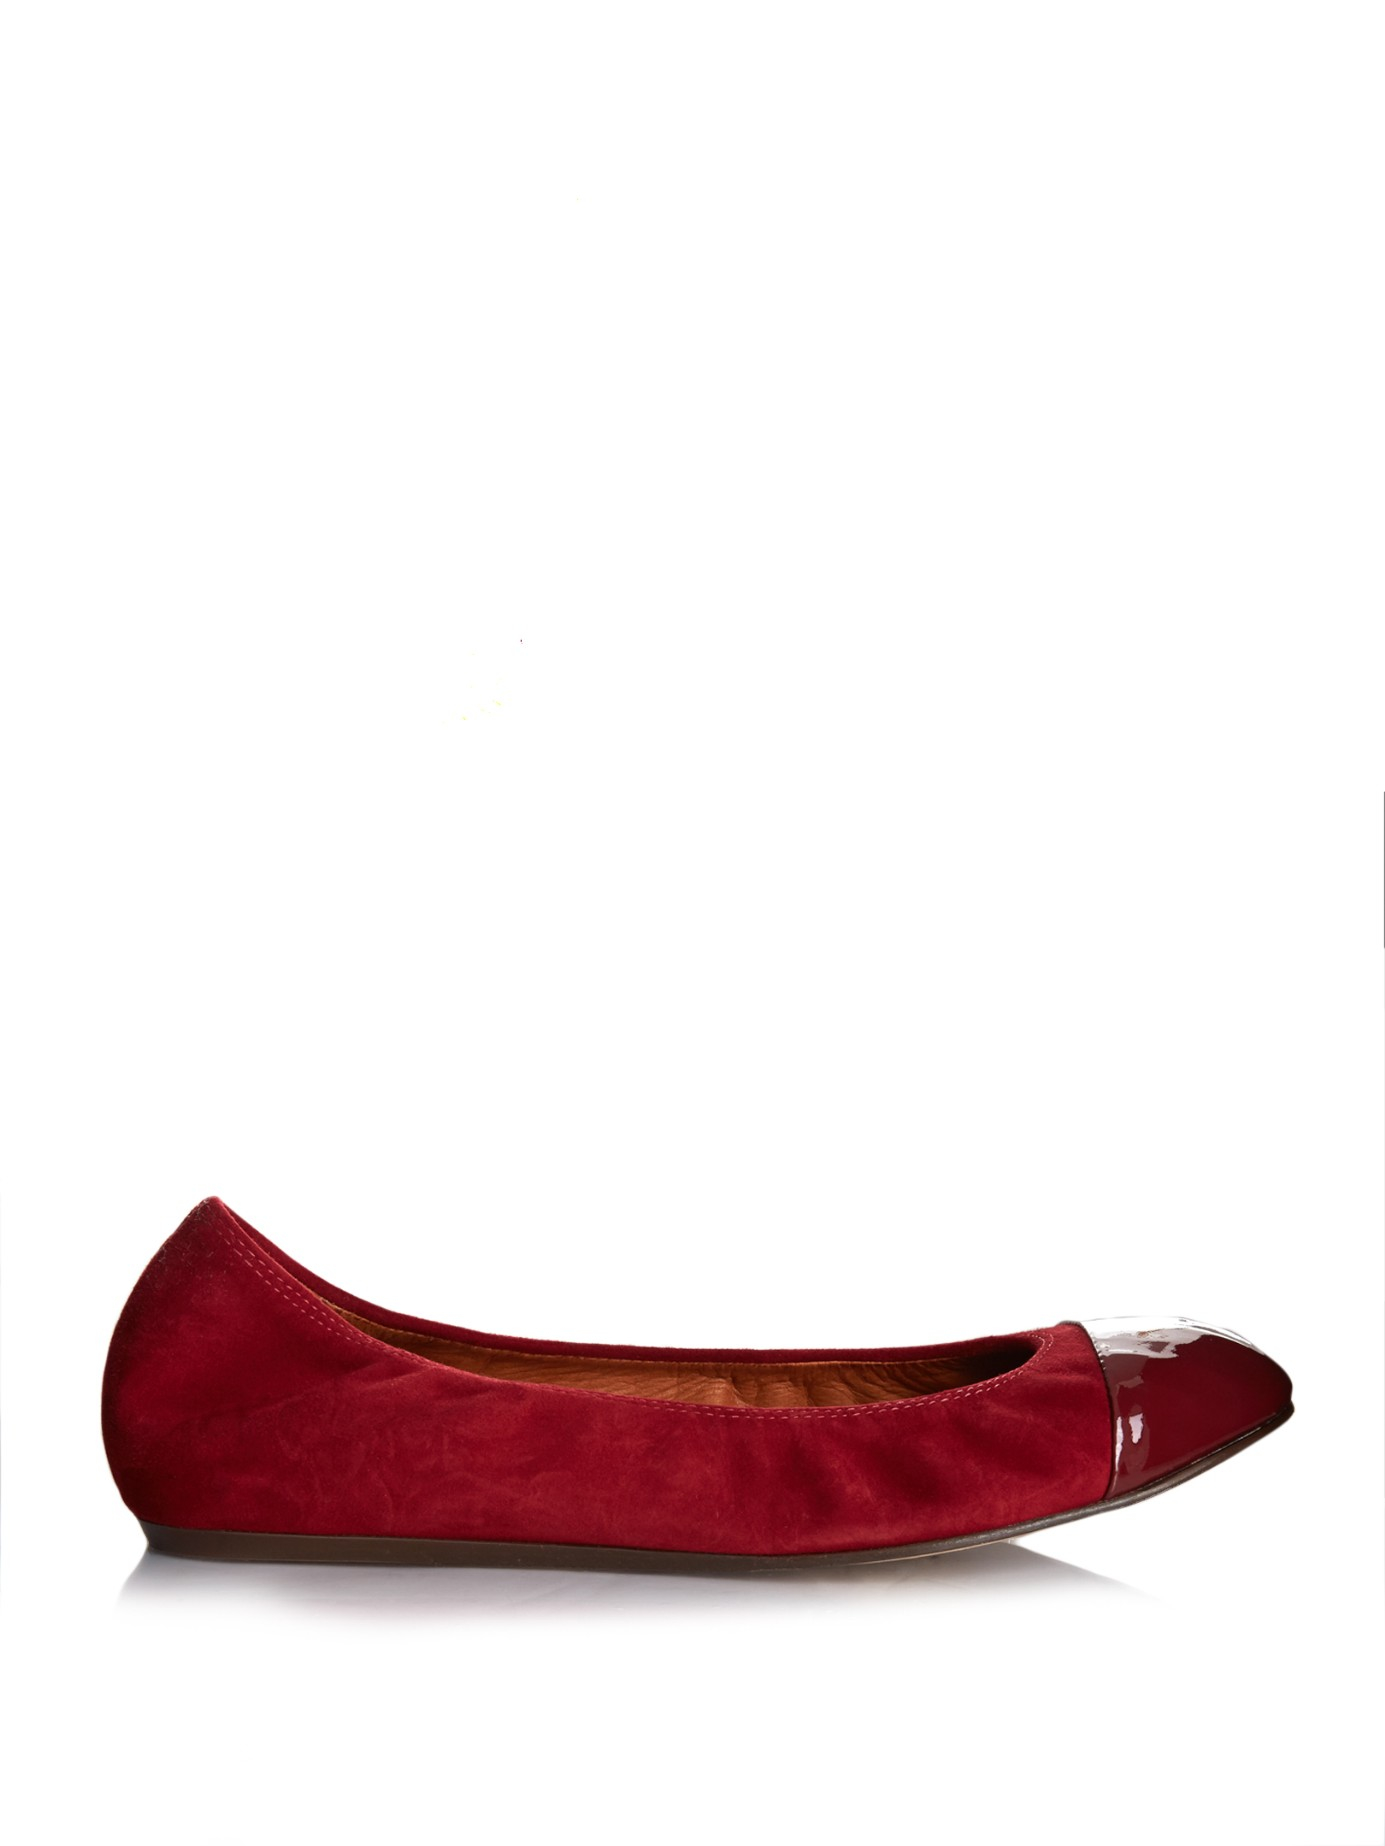 Best Seller Cheap Online Lanvin Ballerinas suede leather Clearance Online Fake q7Oh0uF